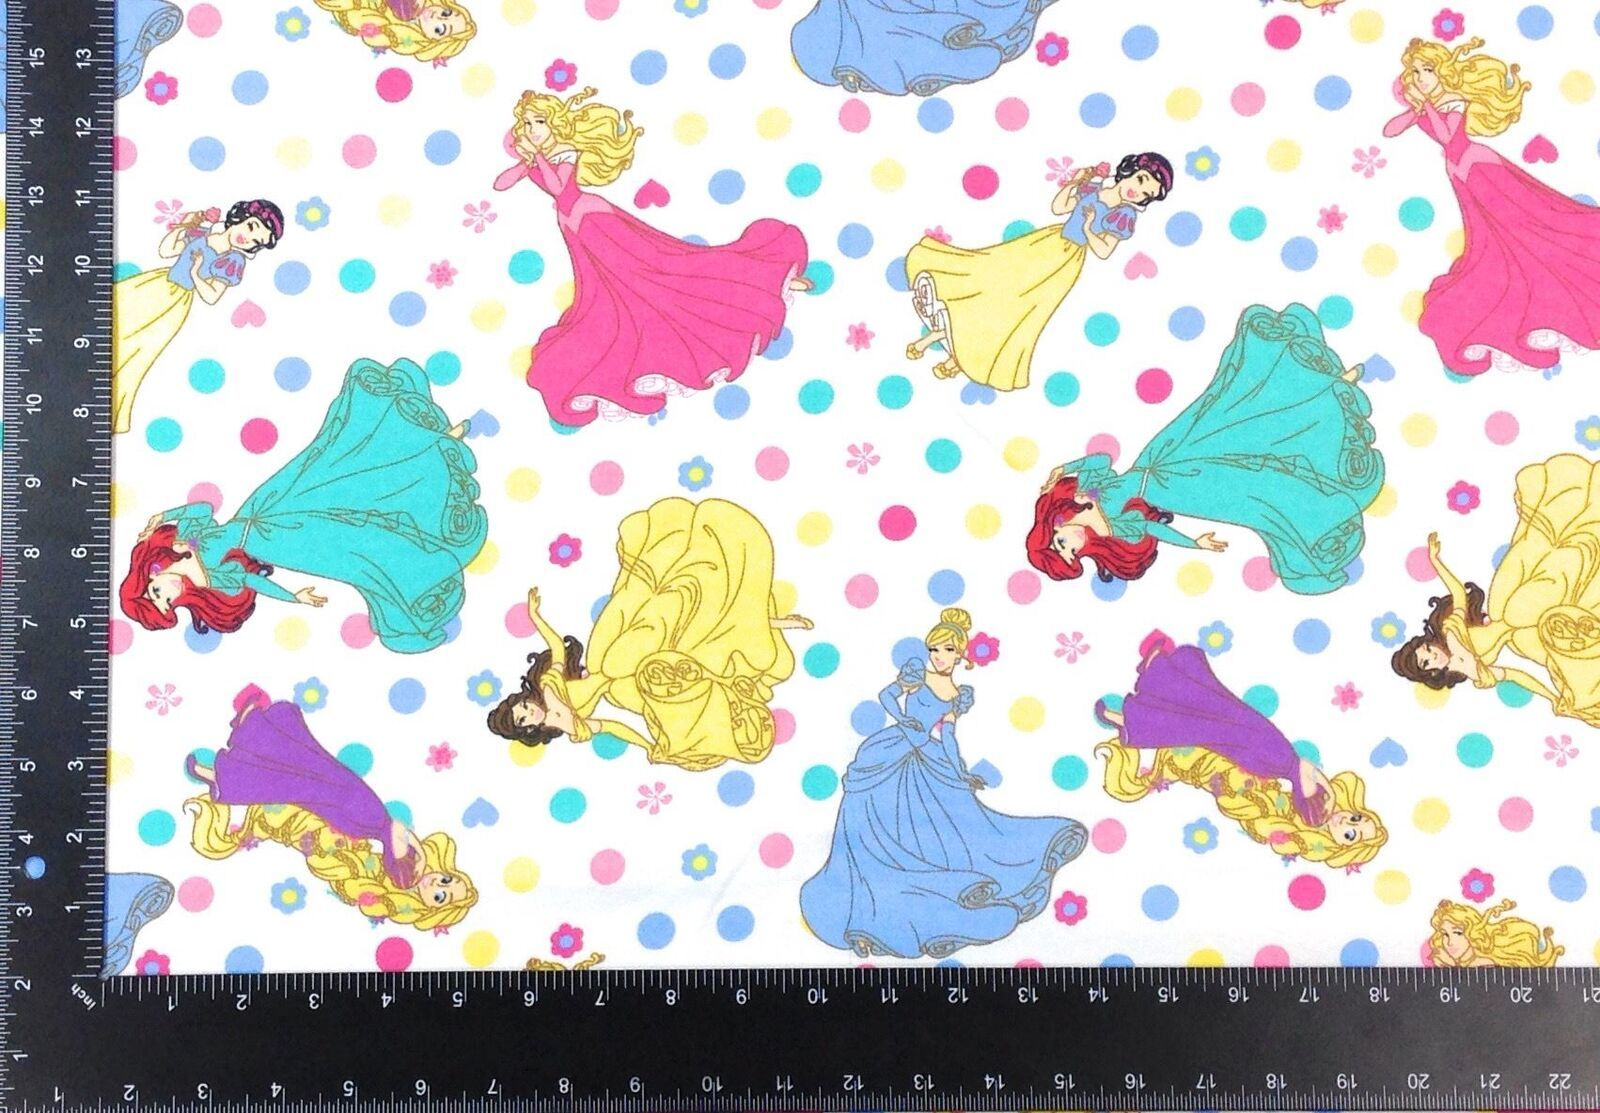 Disney Princesses Winceyette 100% Brushed Cotton Fabric Material *3 Sizes*